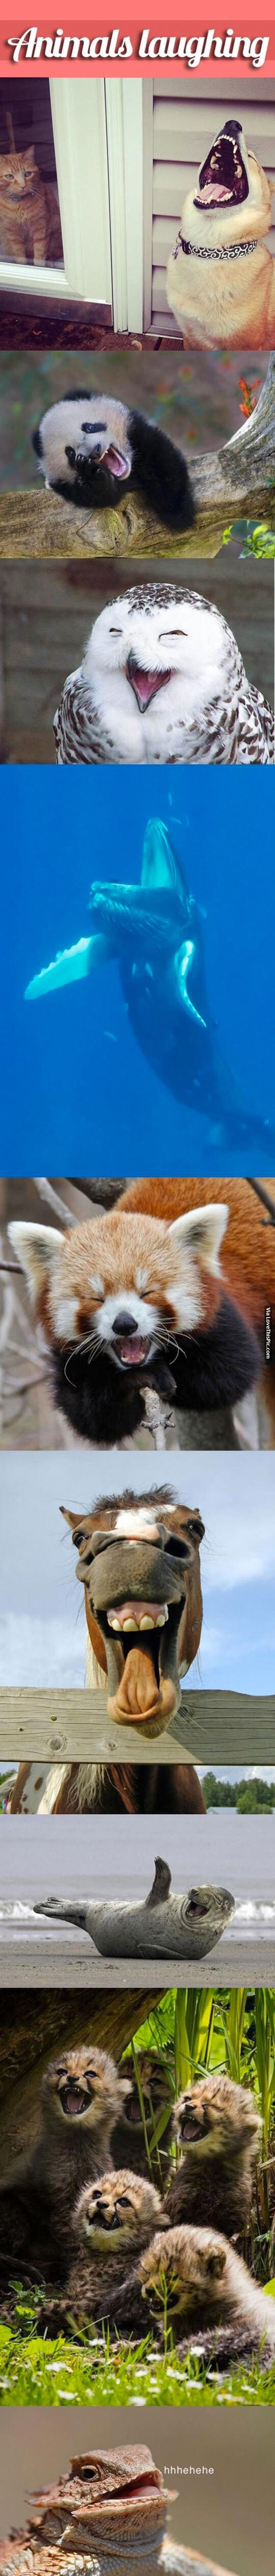 "Cute pics of animals ""laughing"""